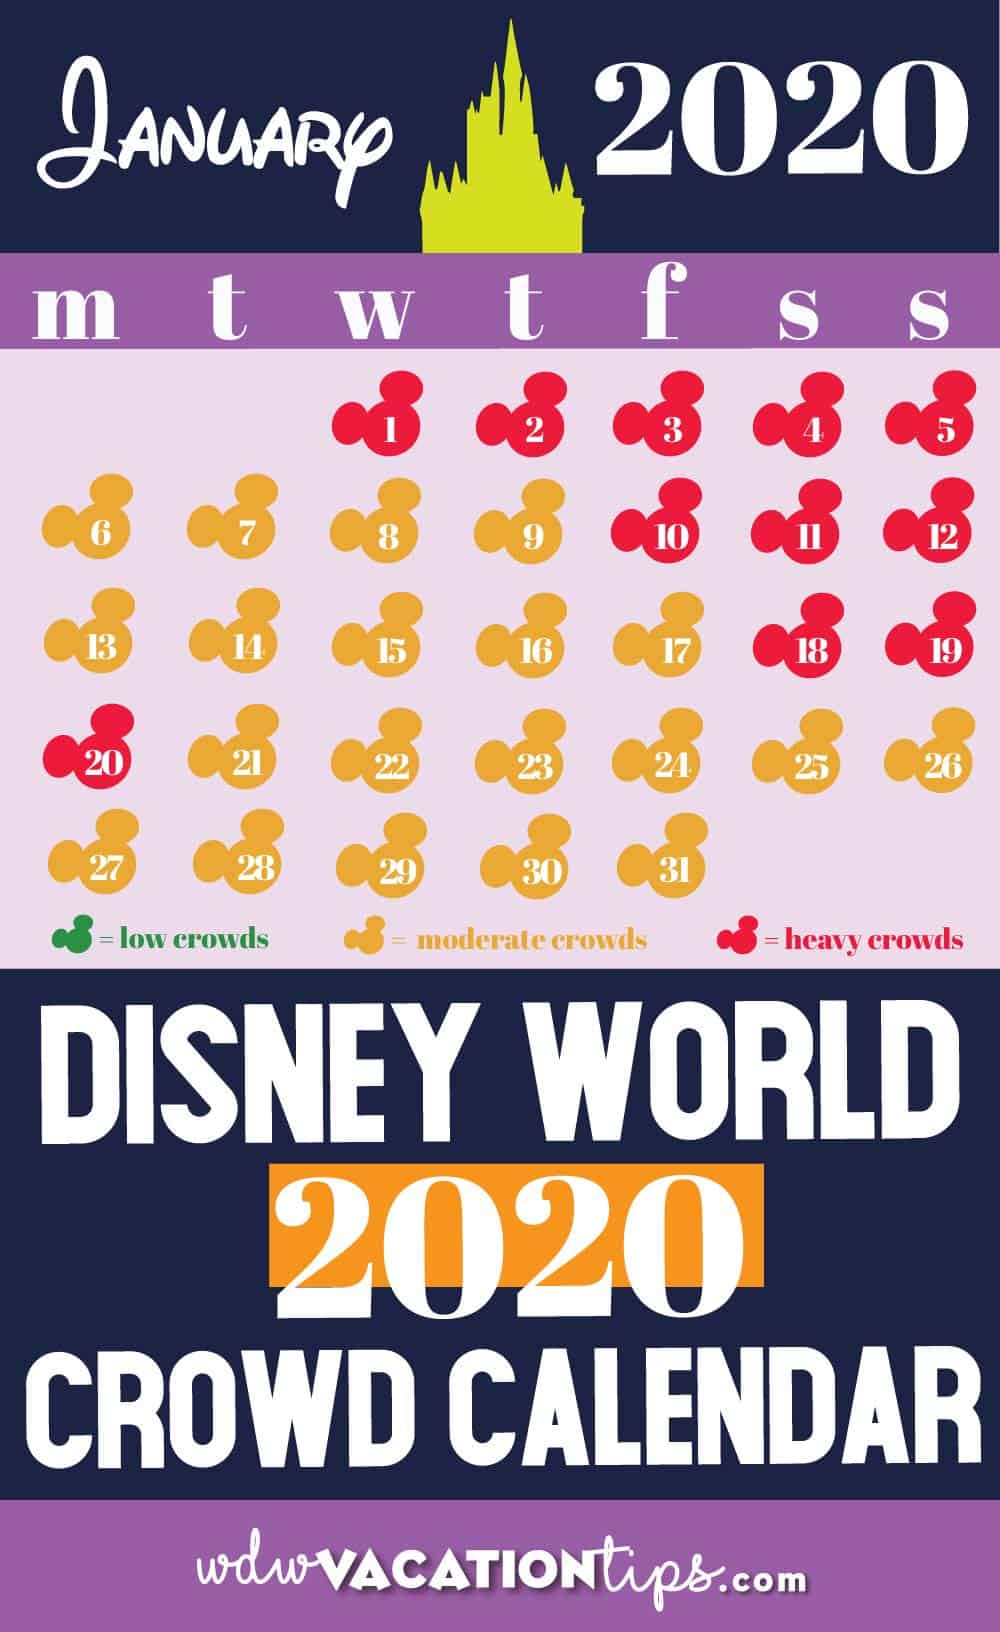 Disney World January 2020 Crowd Calendar